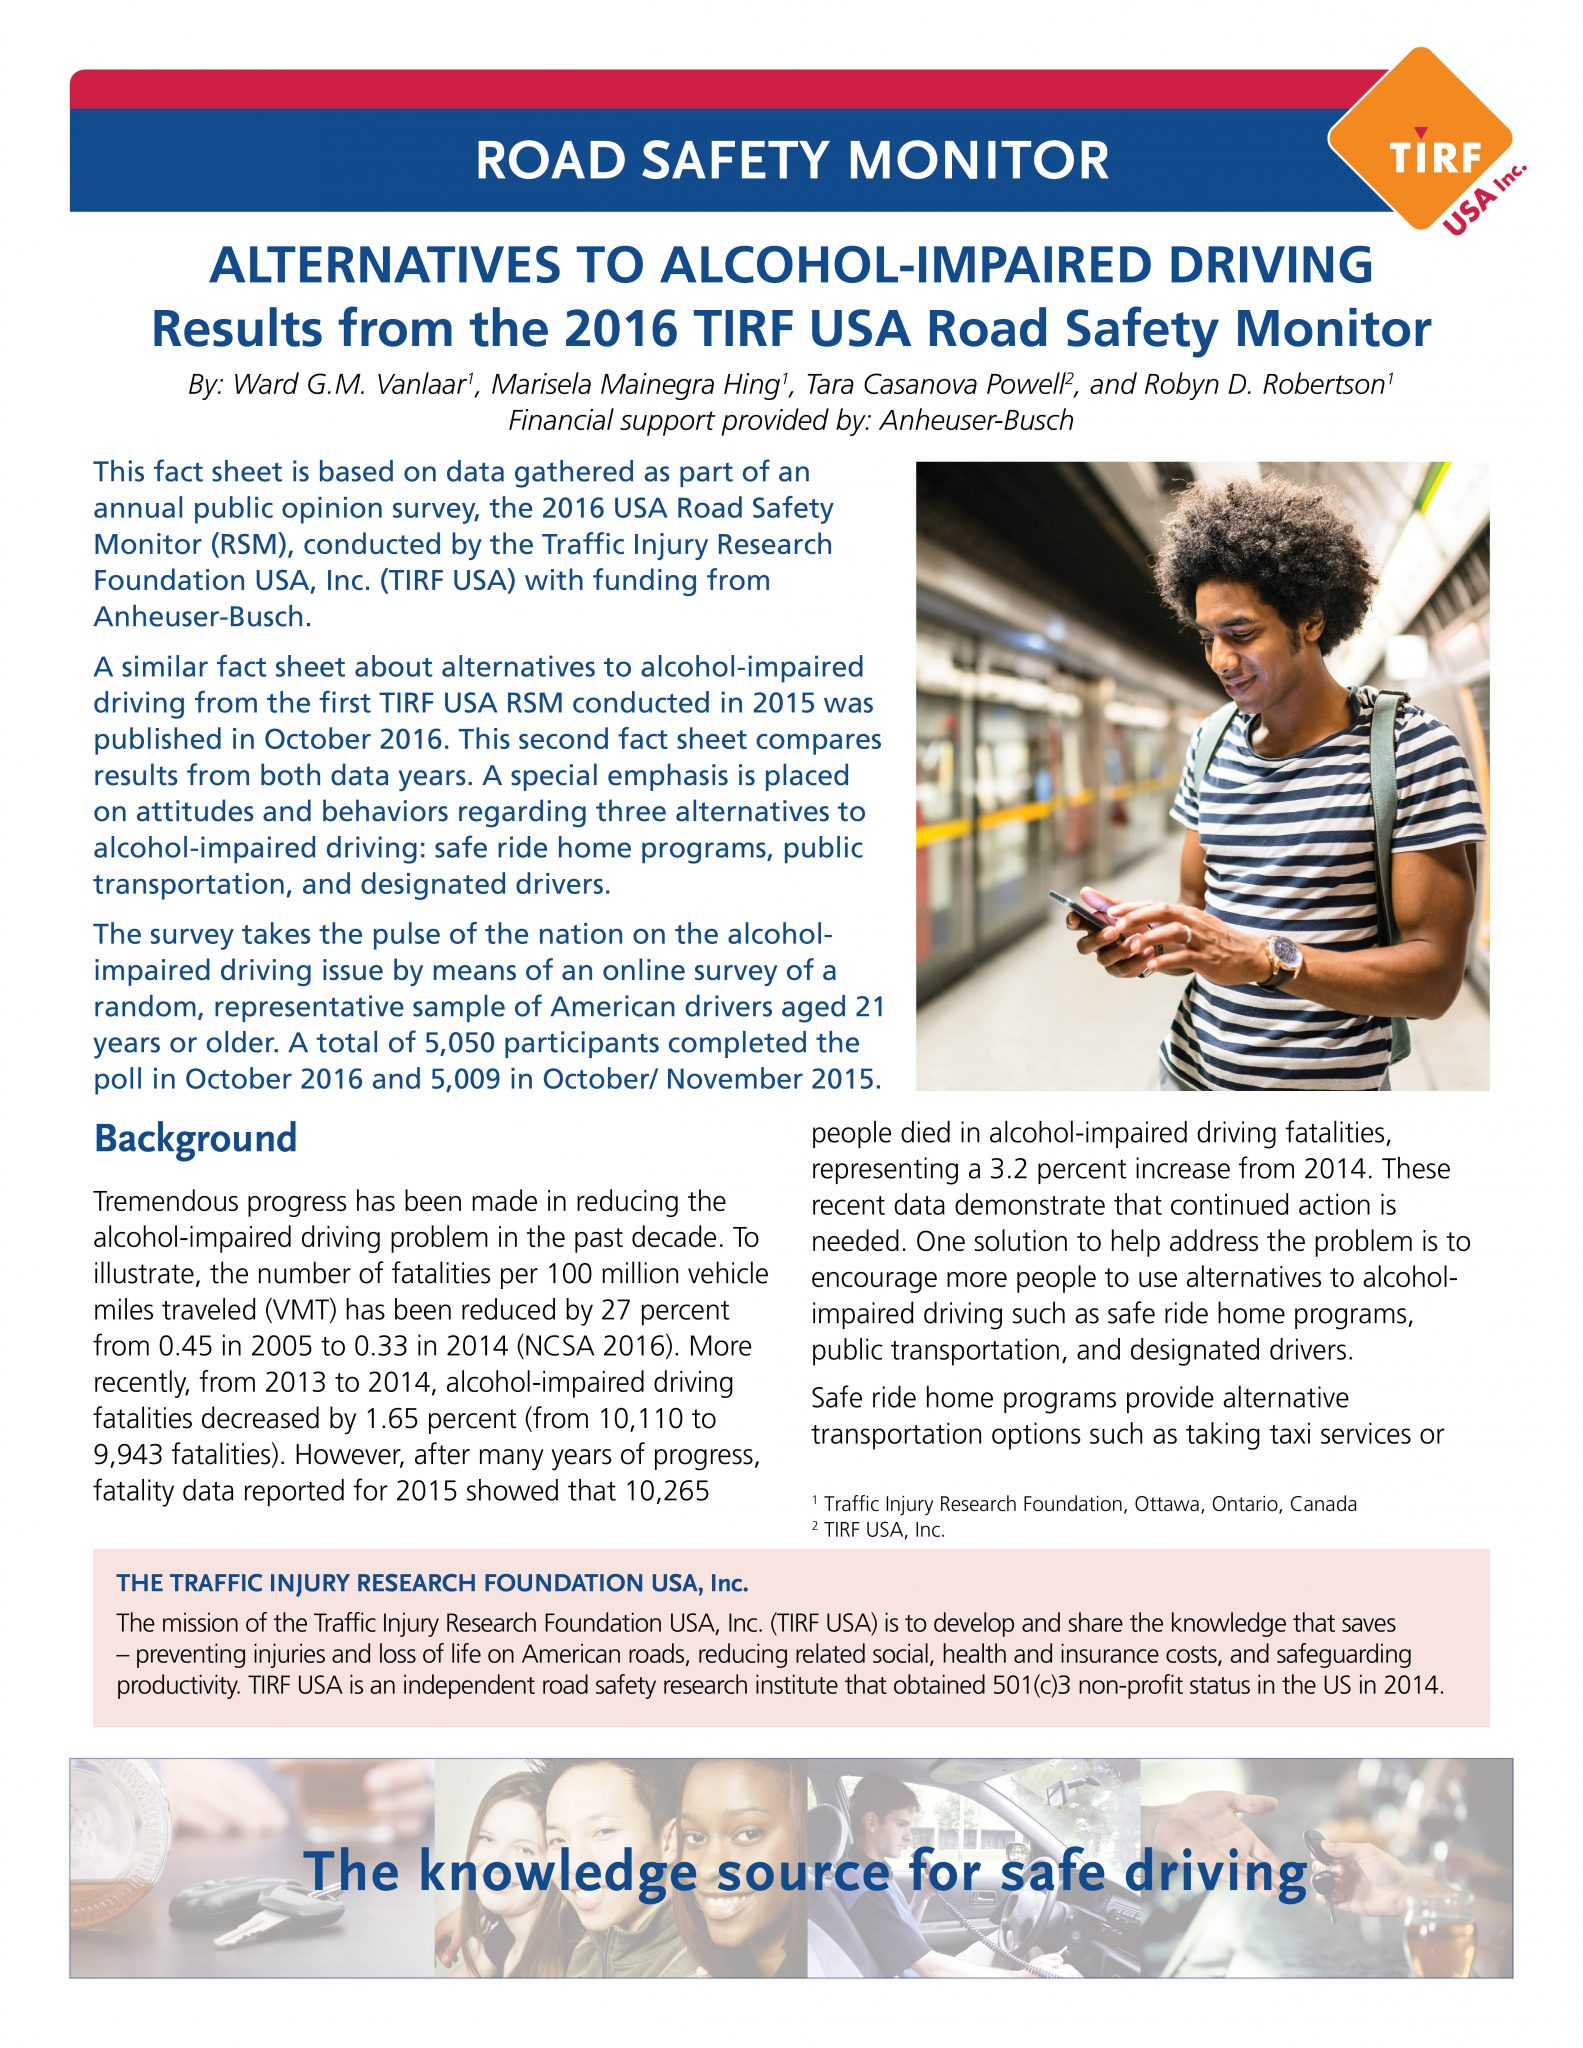 Road Safety Monitor: Alternatives to Impaired Driving in the United States, 2016